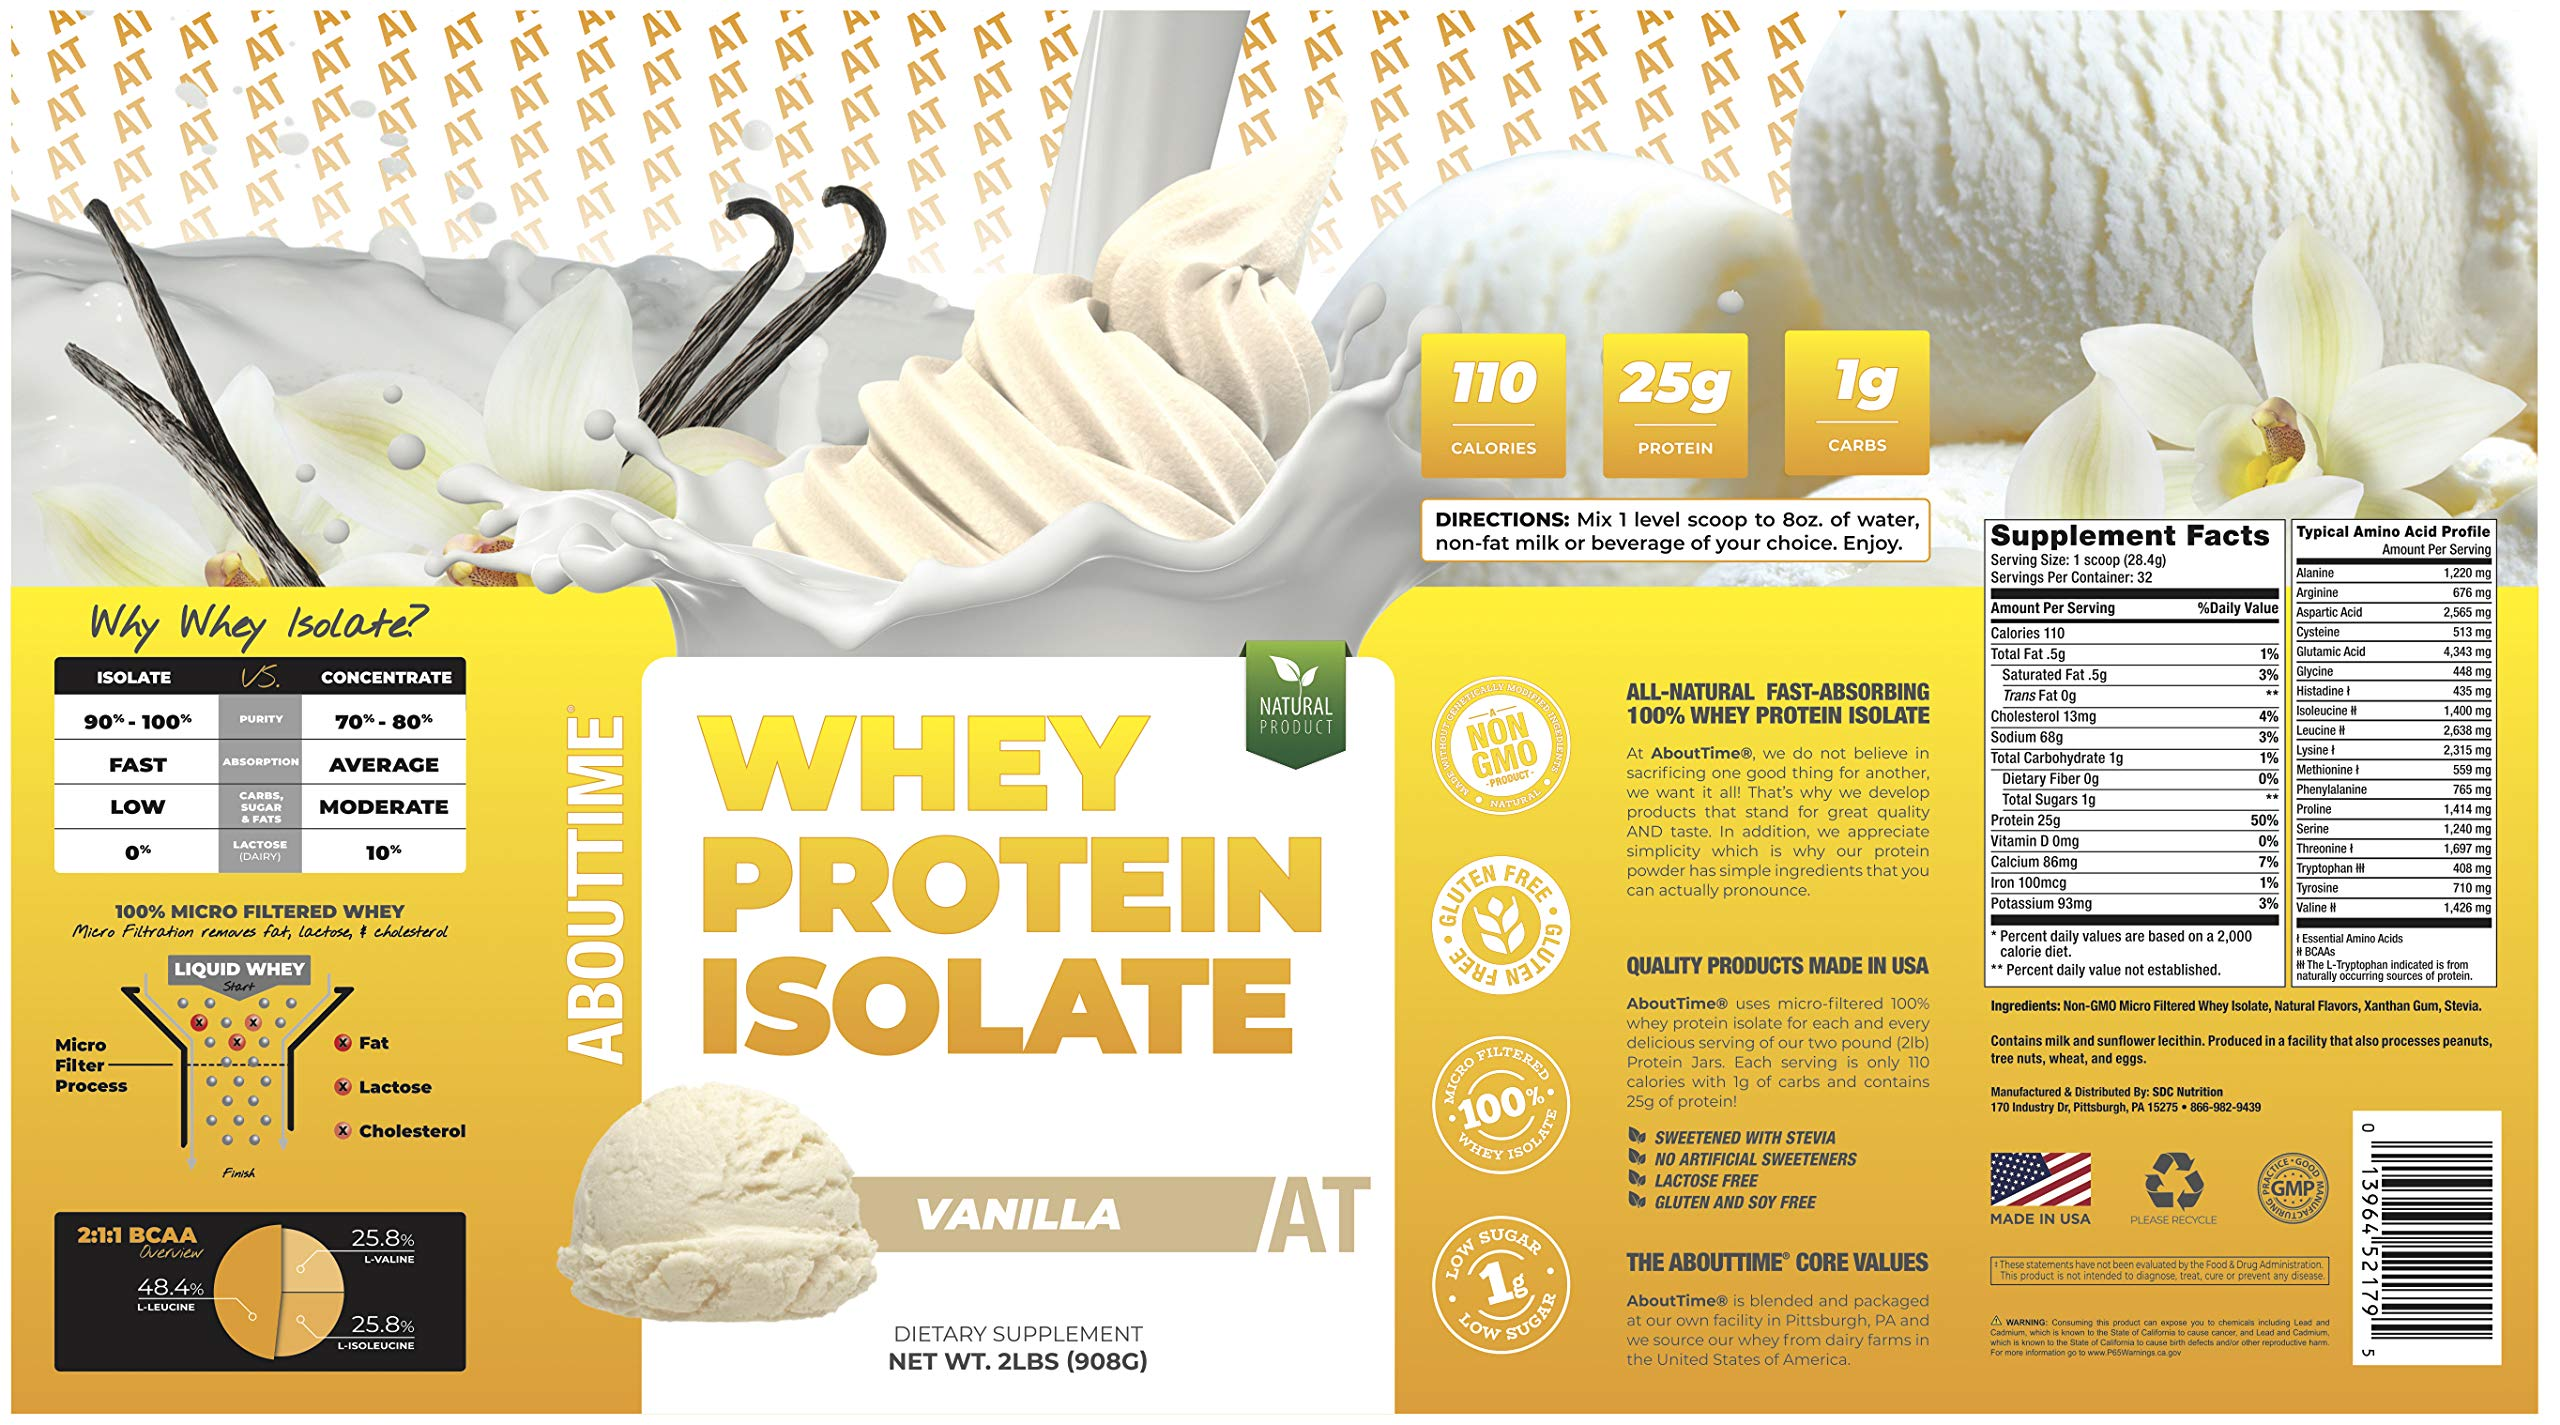 About Time Whey Isolate Protein, Non-GMO, All Natural, Lactose/Gluten Free, 25g of Protein Per Serving (Vanilla - 2 Pounds) by About Time